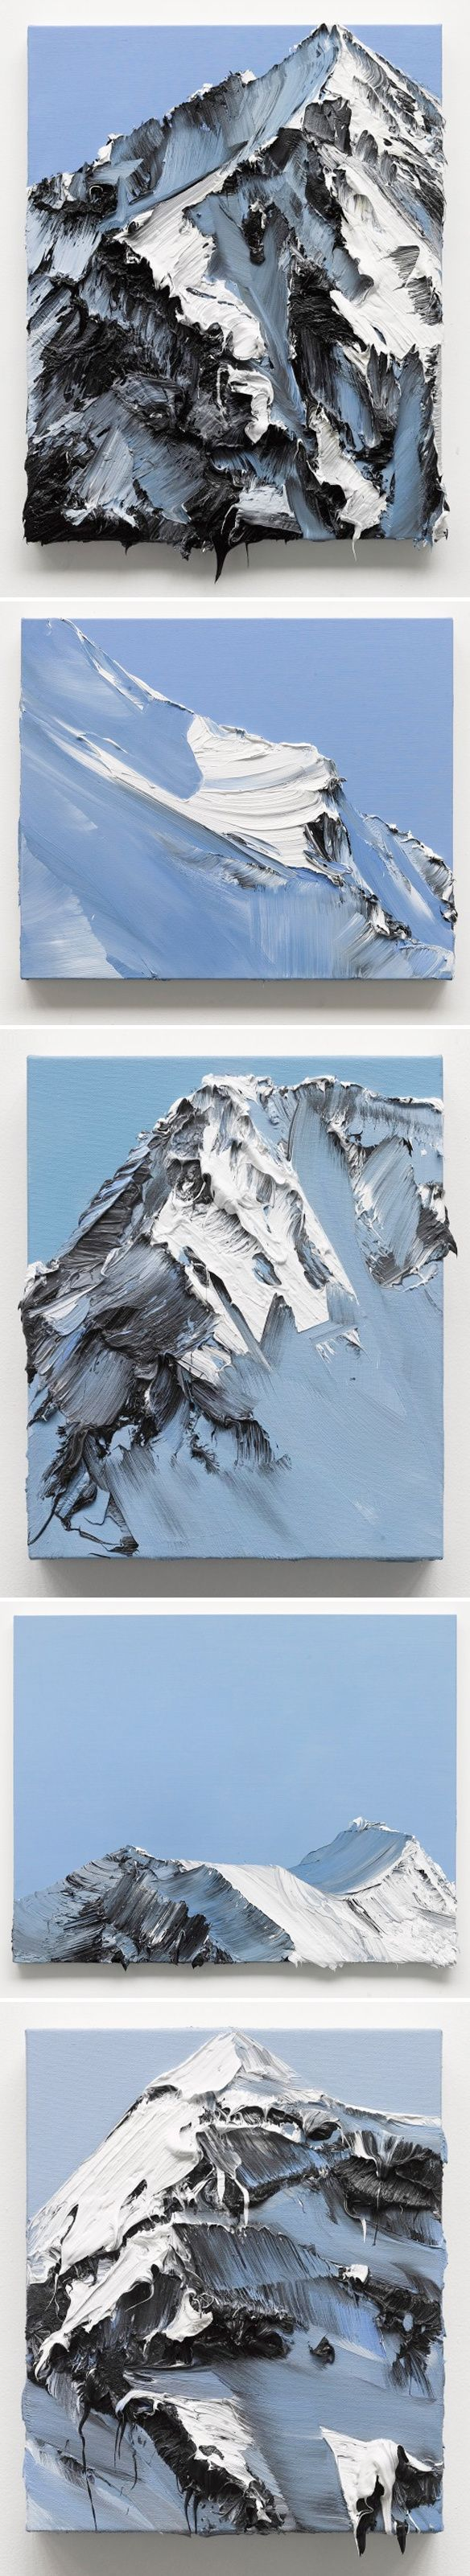 Amazing acrylic mountain paintings, that dripping effect too :O